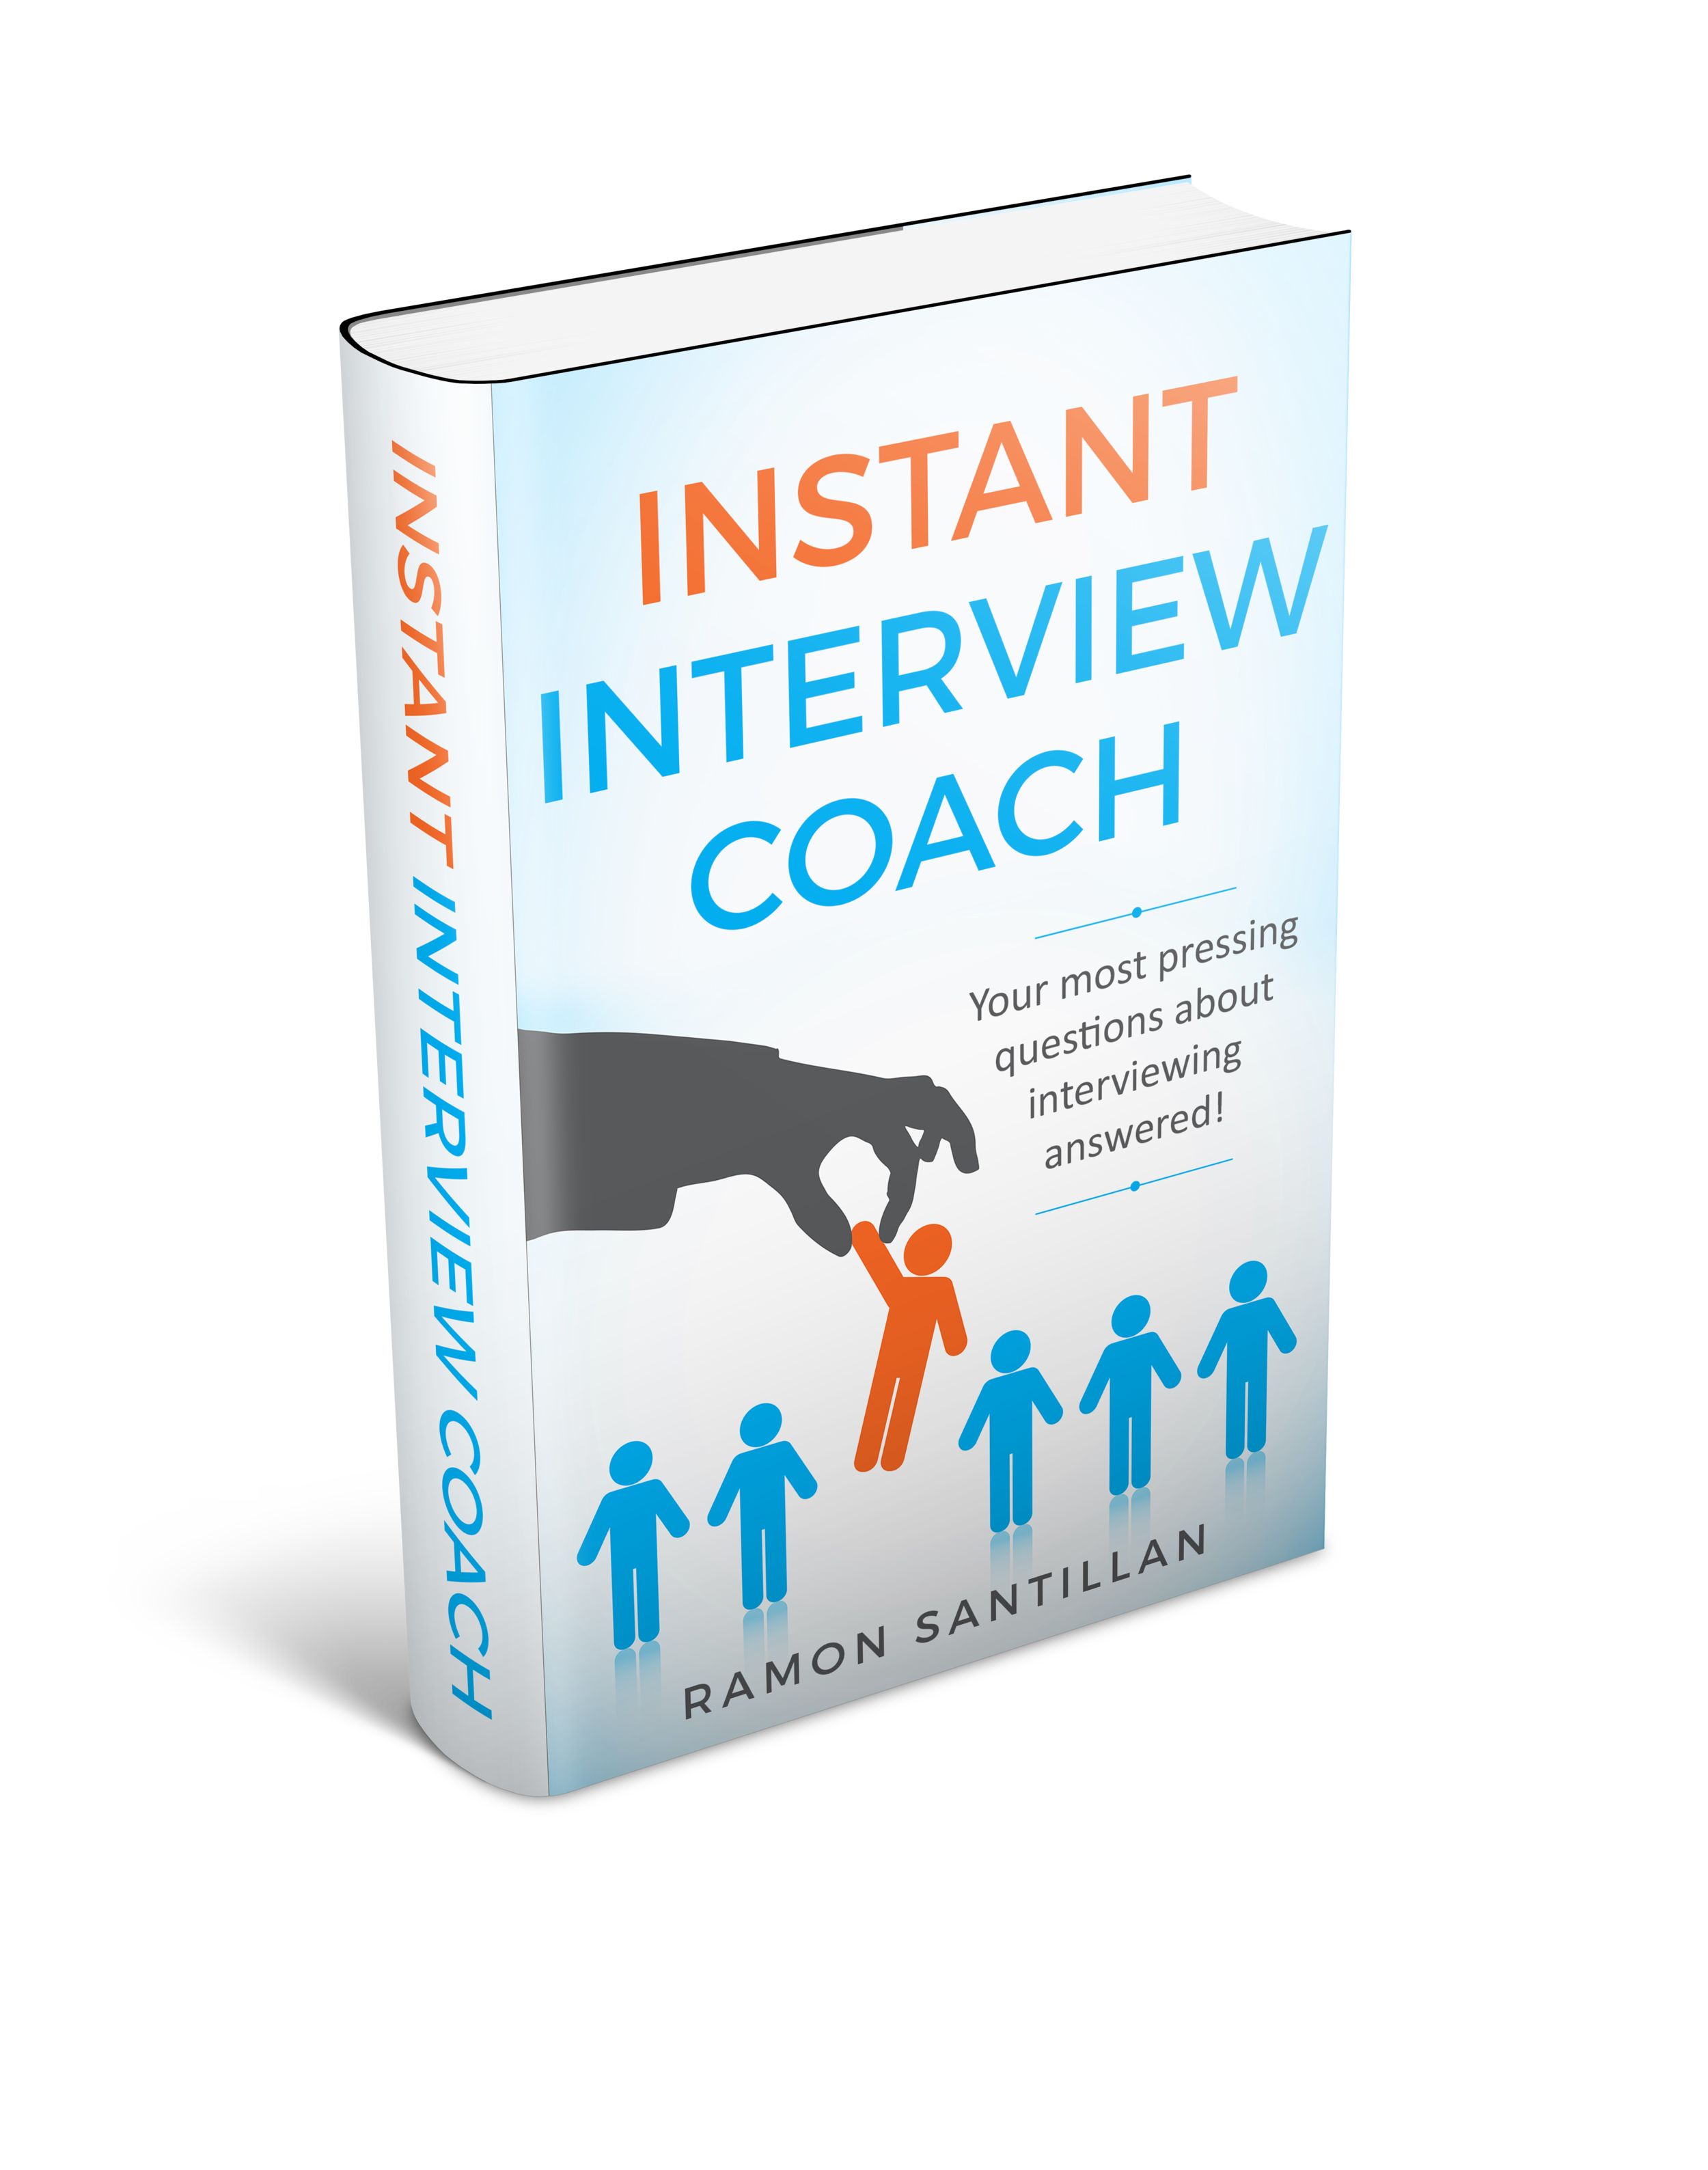 Instant Interview Coach